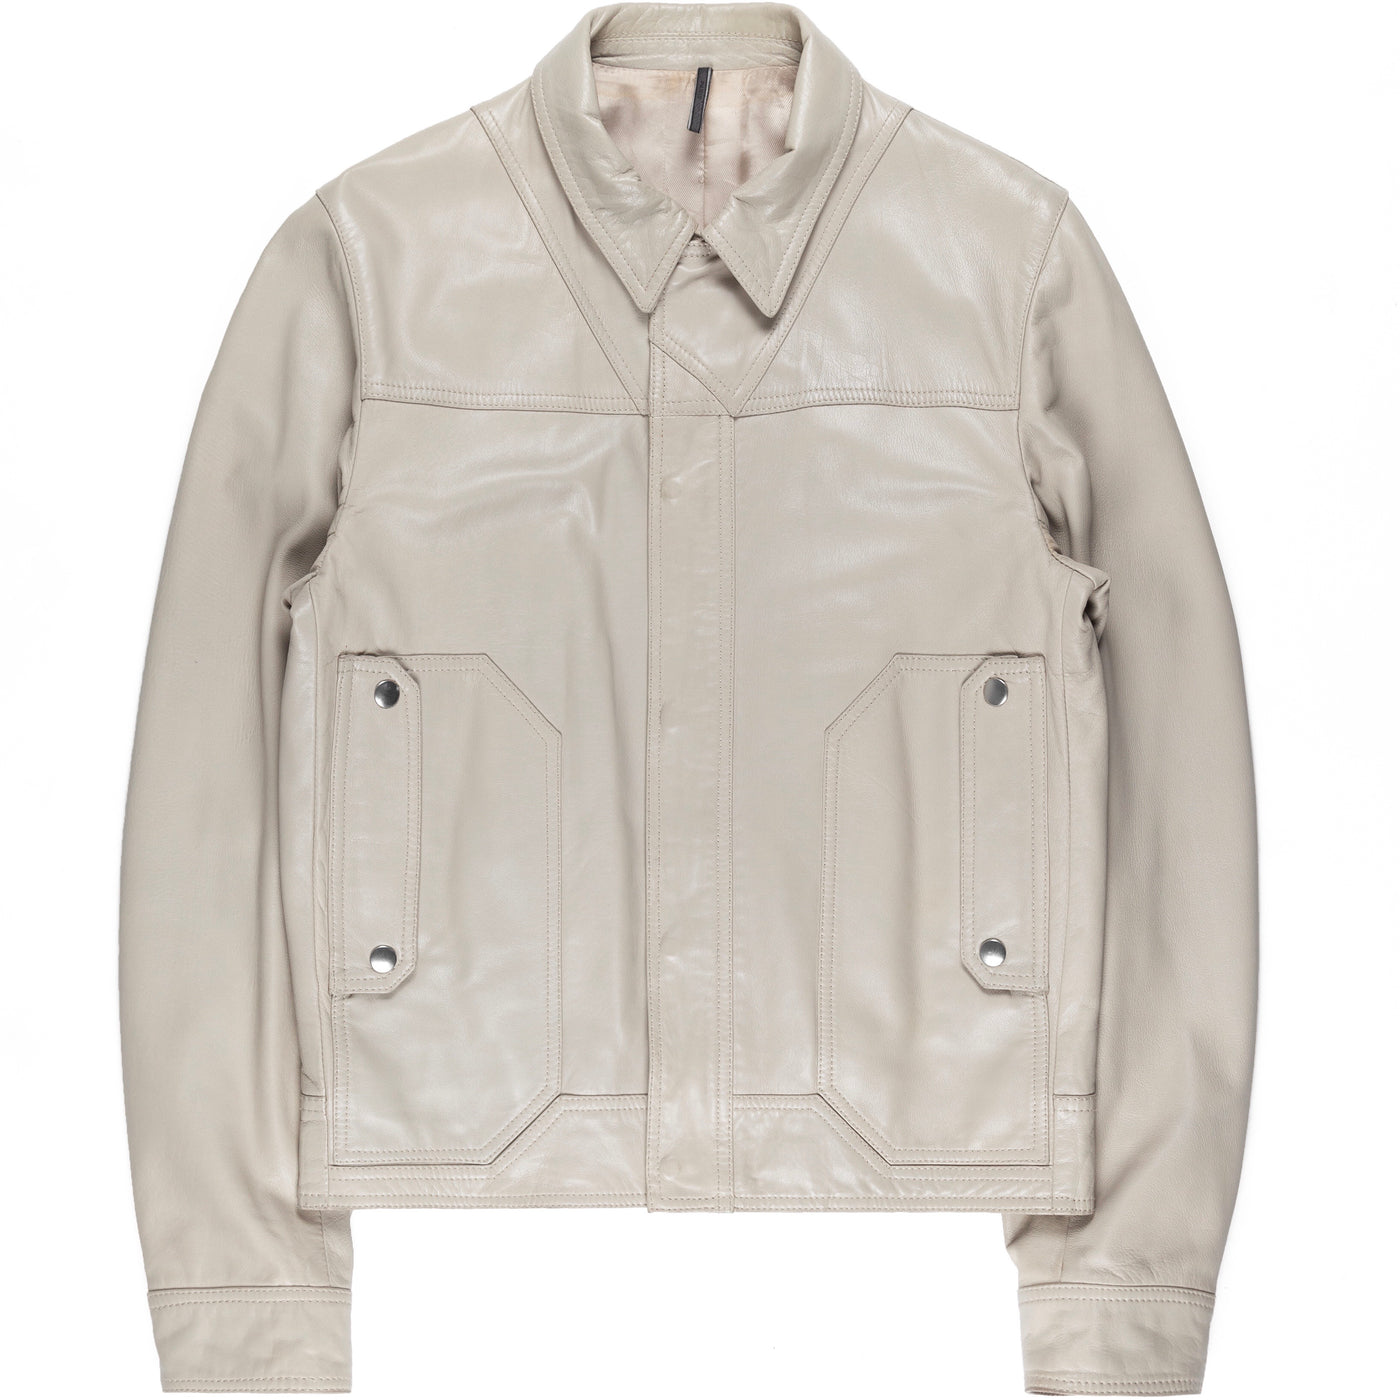 "Dior Homme Taupe Paneled Leather Jacket - AW07 ""Navigate"""